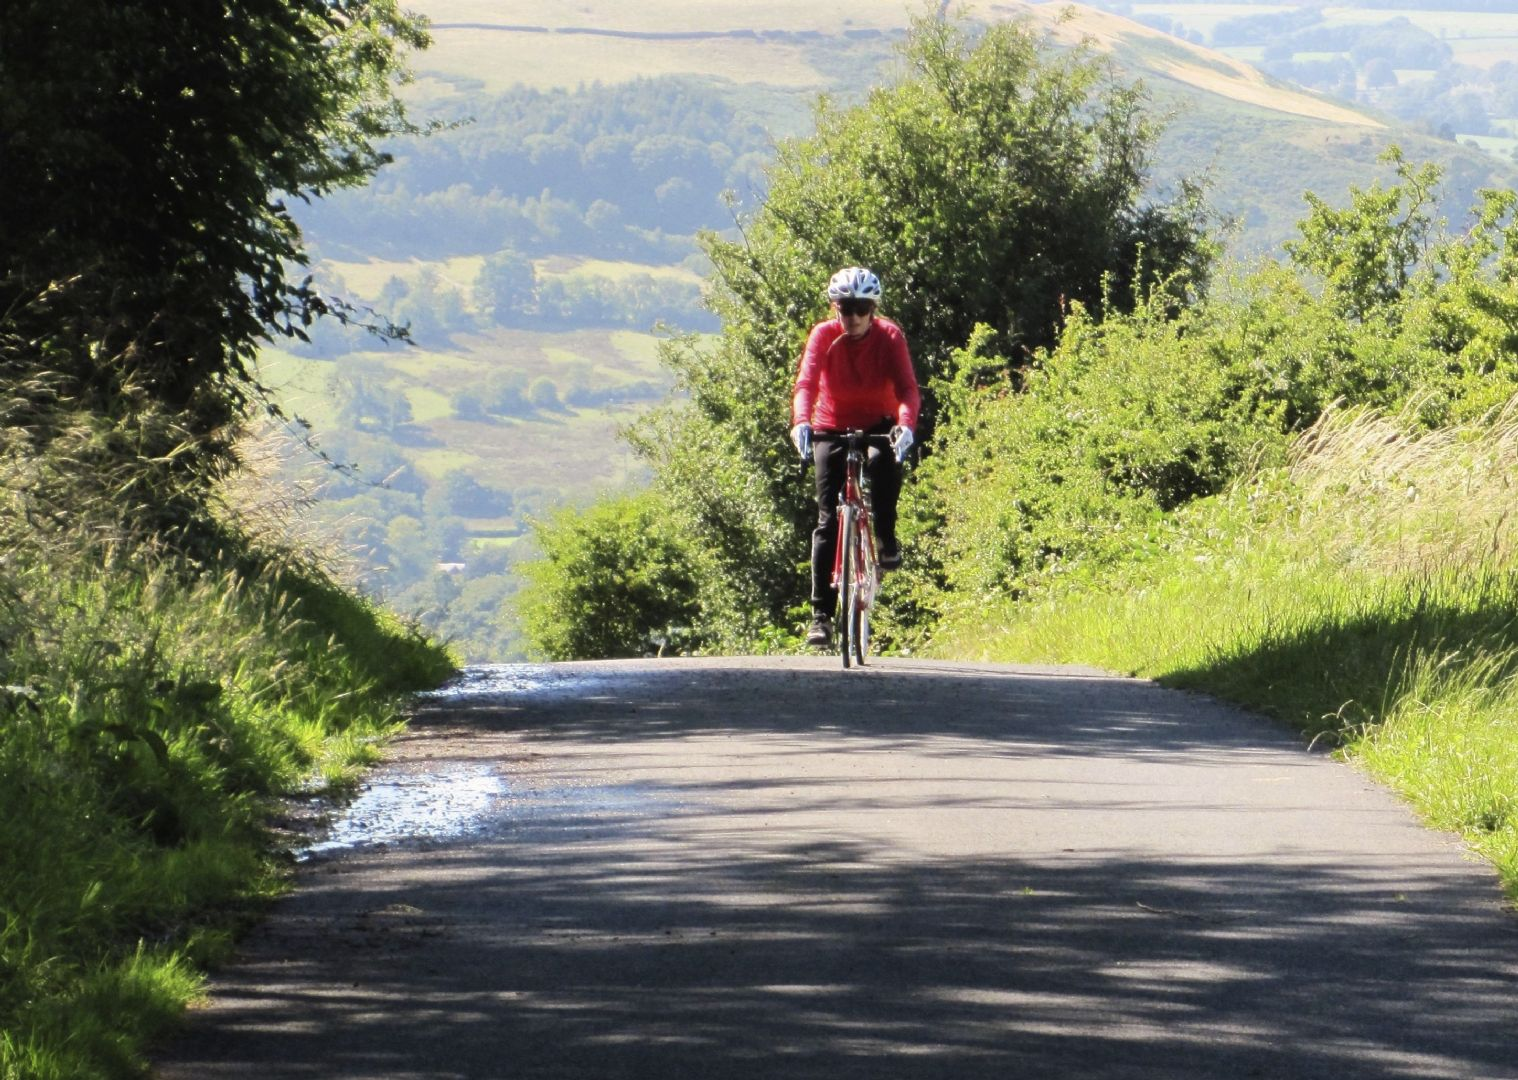 _Customer.73824.11942.jpg - UK - C2C - Coast to Coast 3 Days Cycling - Self-Guided Leisure Cycling Holiday - Leisure Cycling